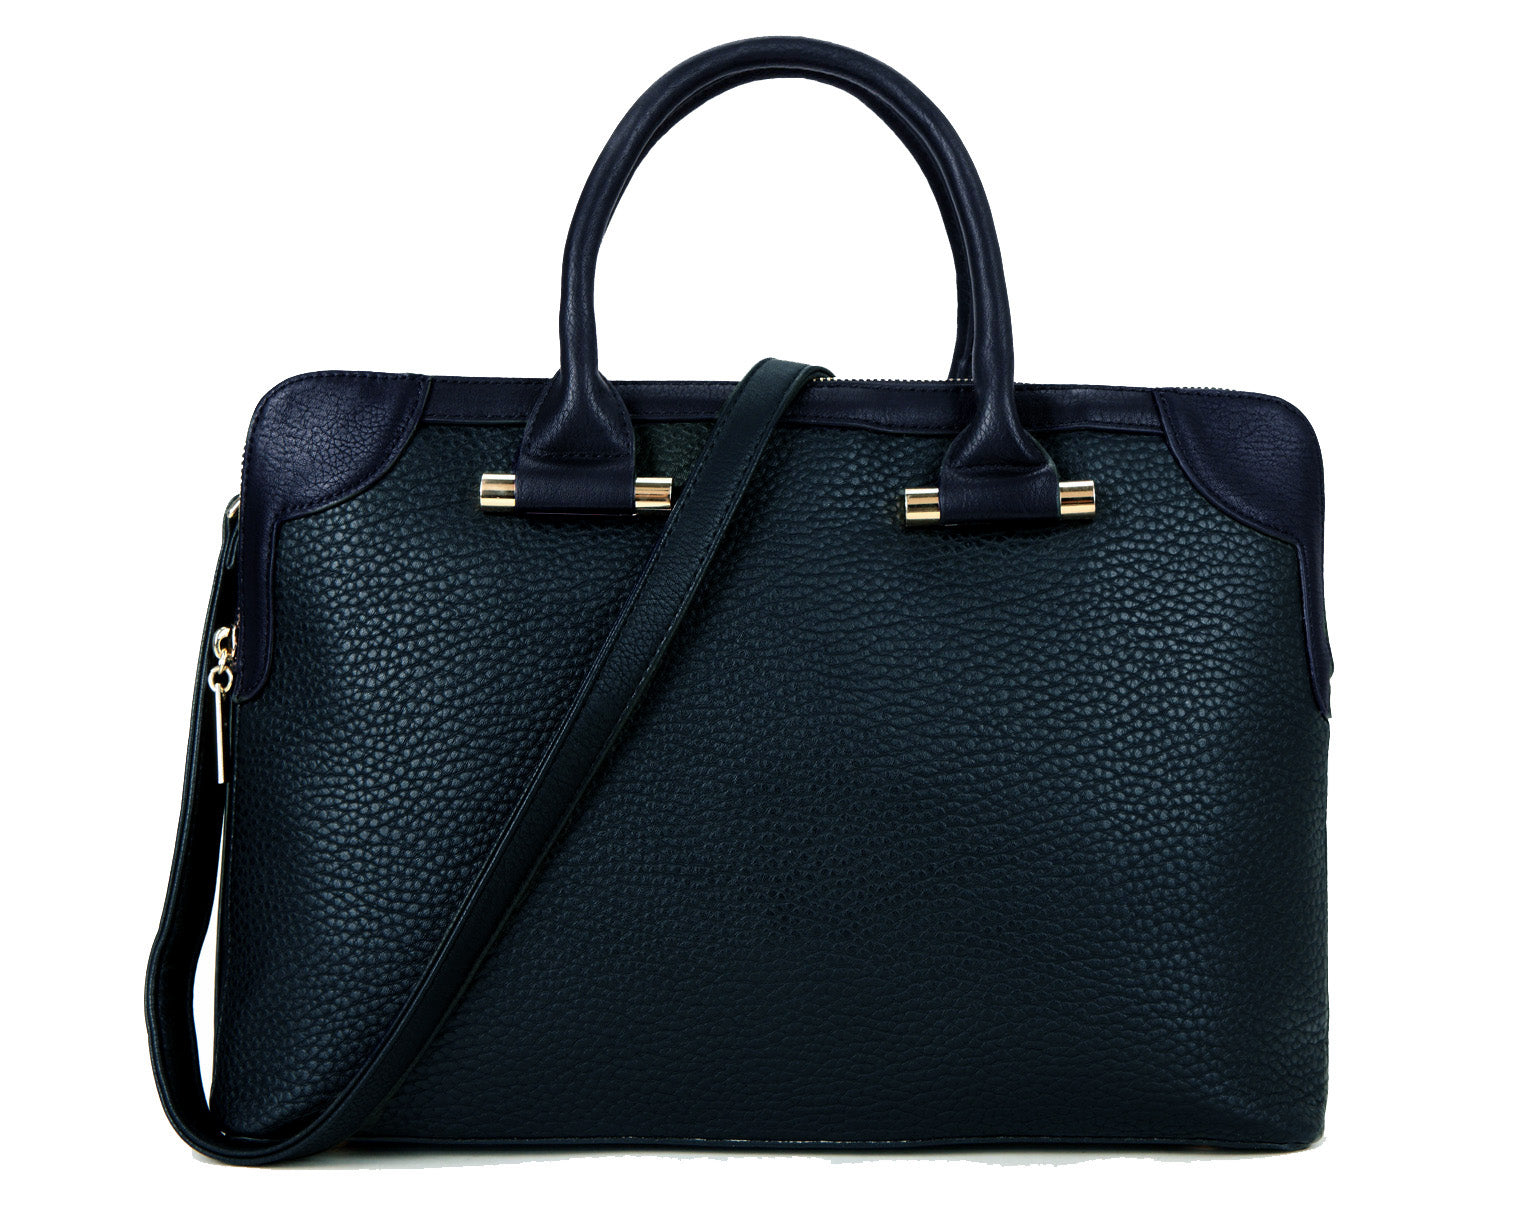 "A-SHU NAVY BLUE 15.6"" LAPTOP HOLDALL HANDBAG WITH MULTI COMPARTMENTS AND LONG SHOULDER STRAP - A-SHU.CO.UK"